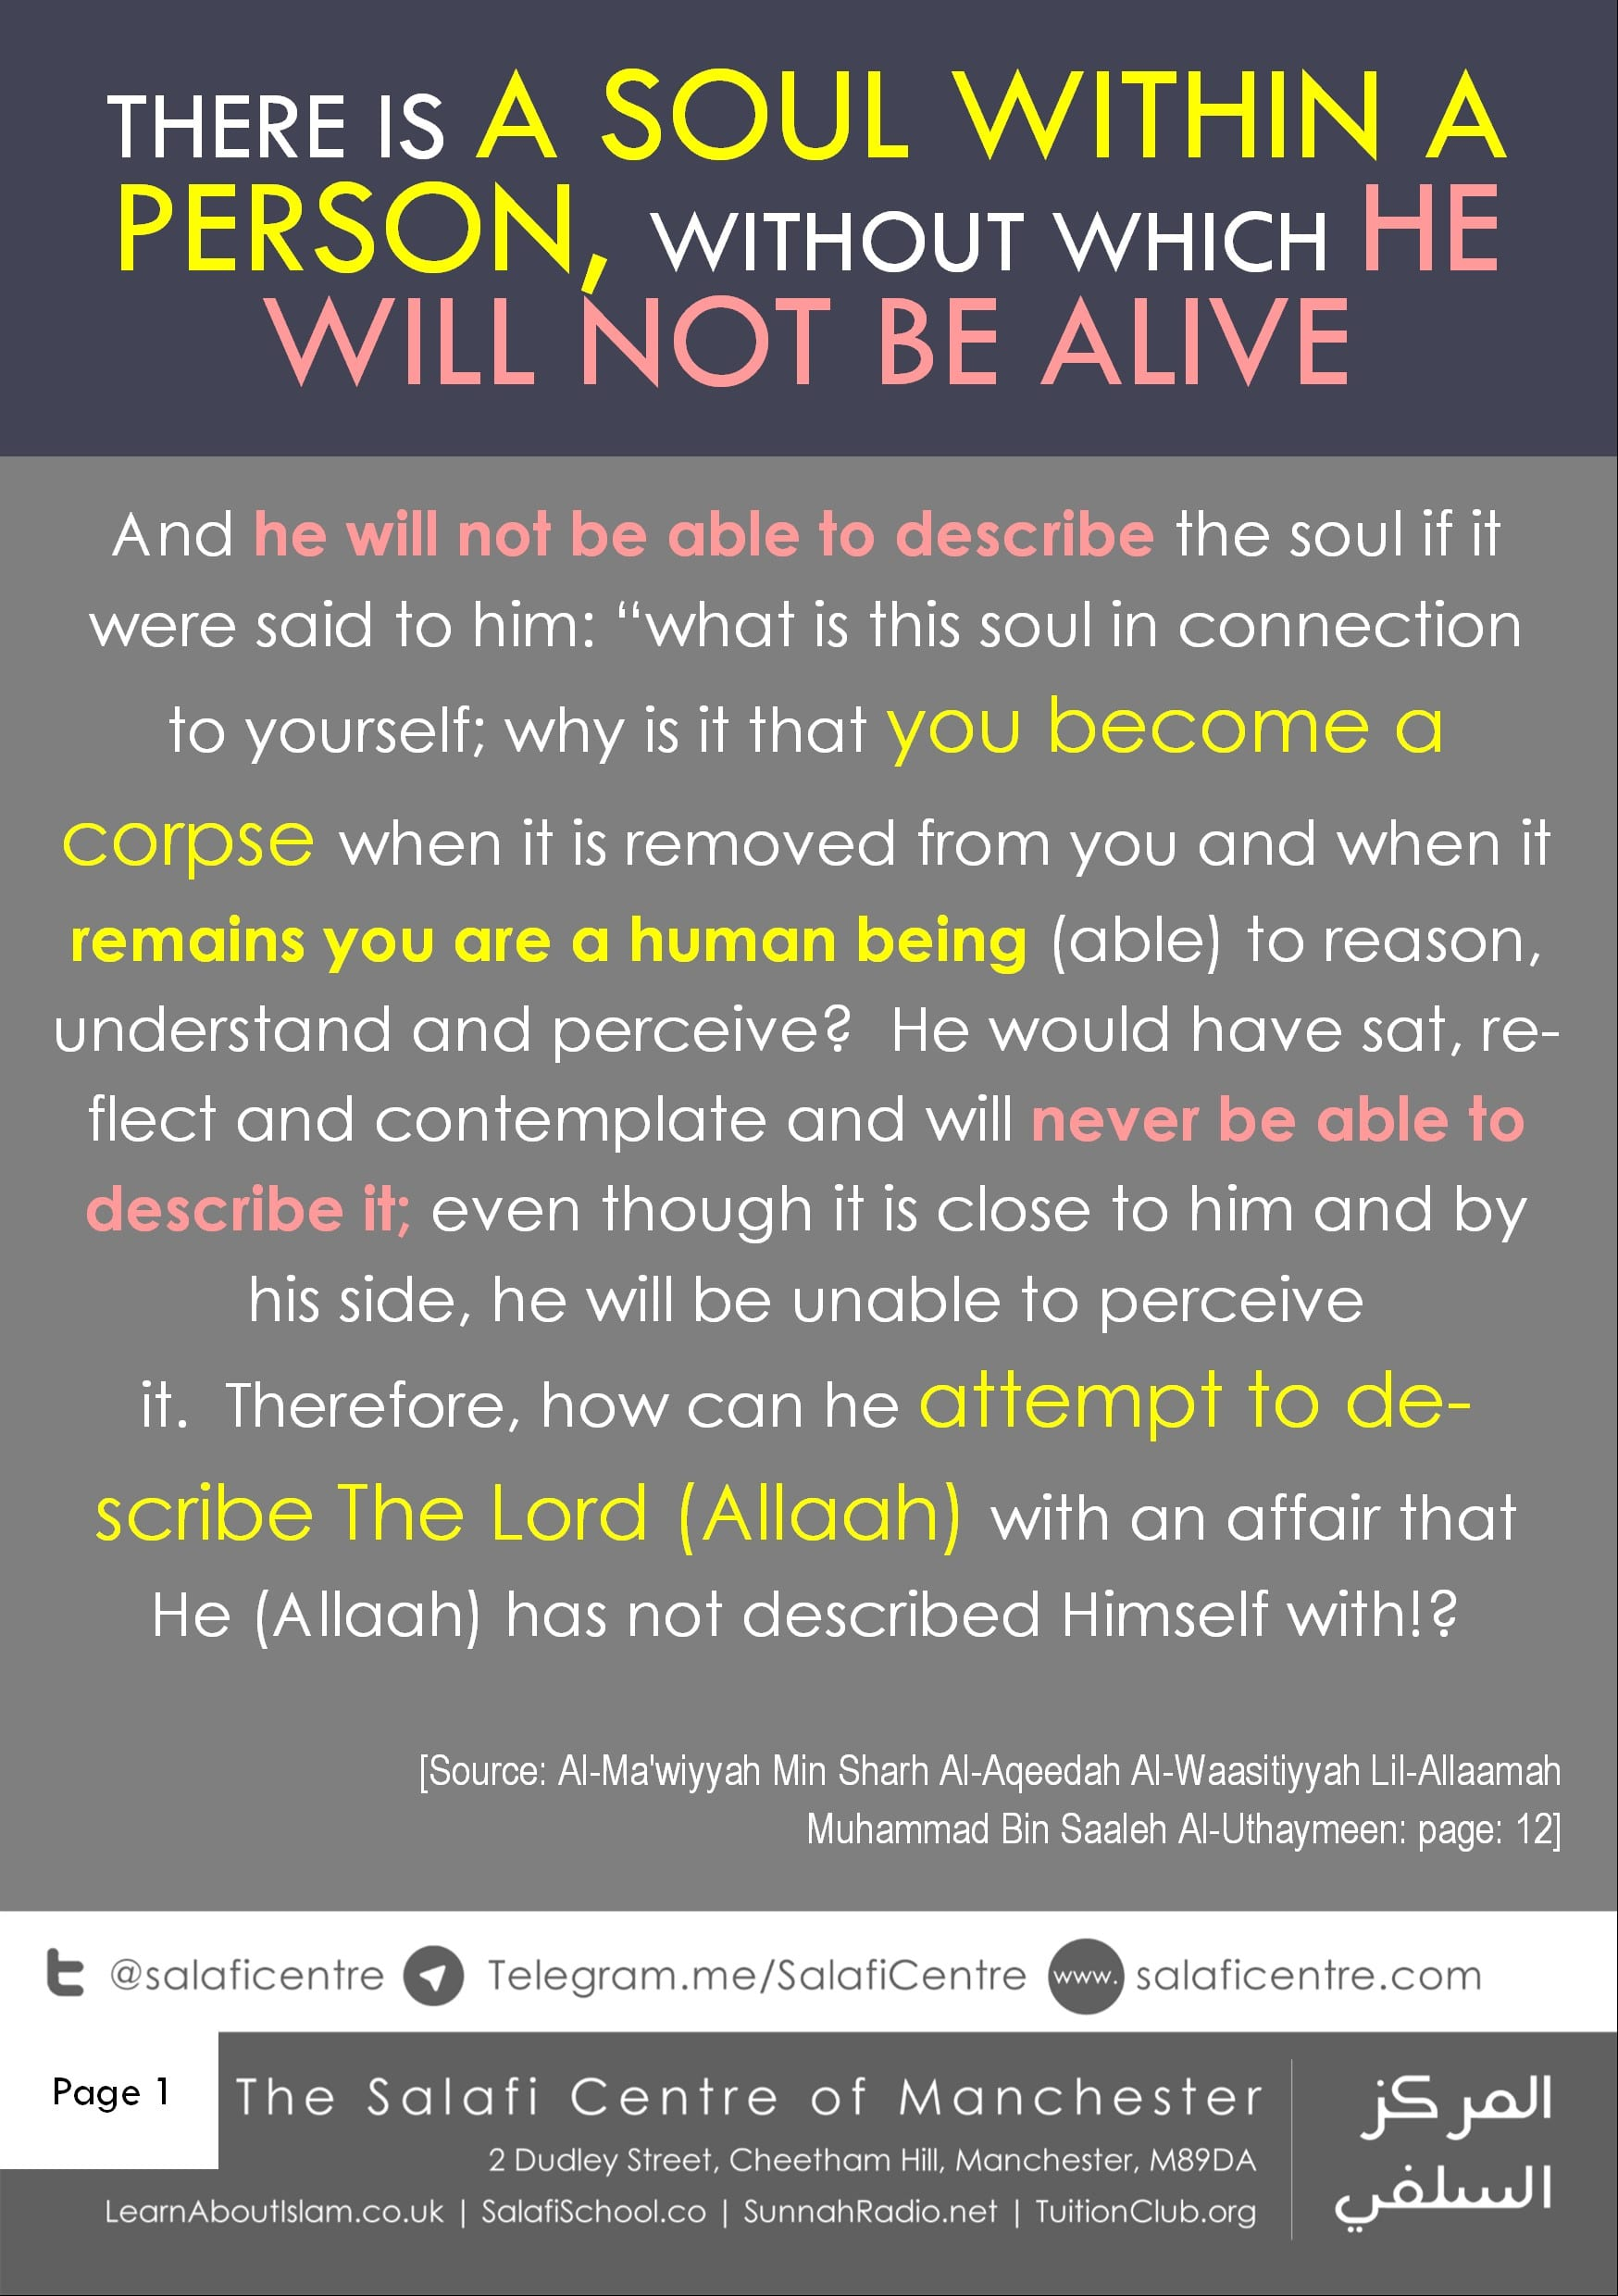 There is a soul within a person, without which he will not be alive… ibn Uthaymeen